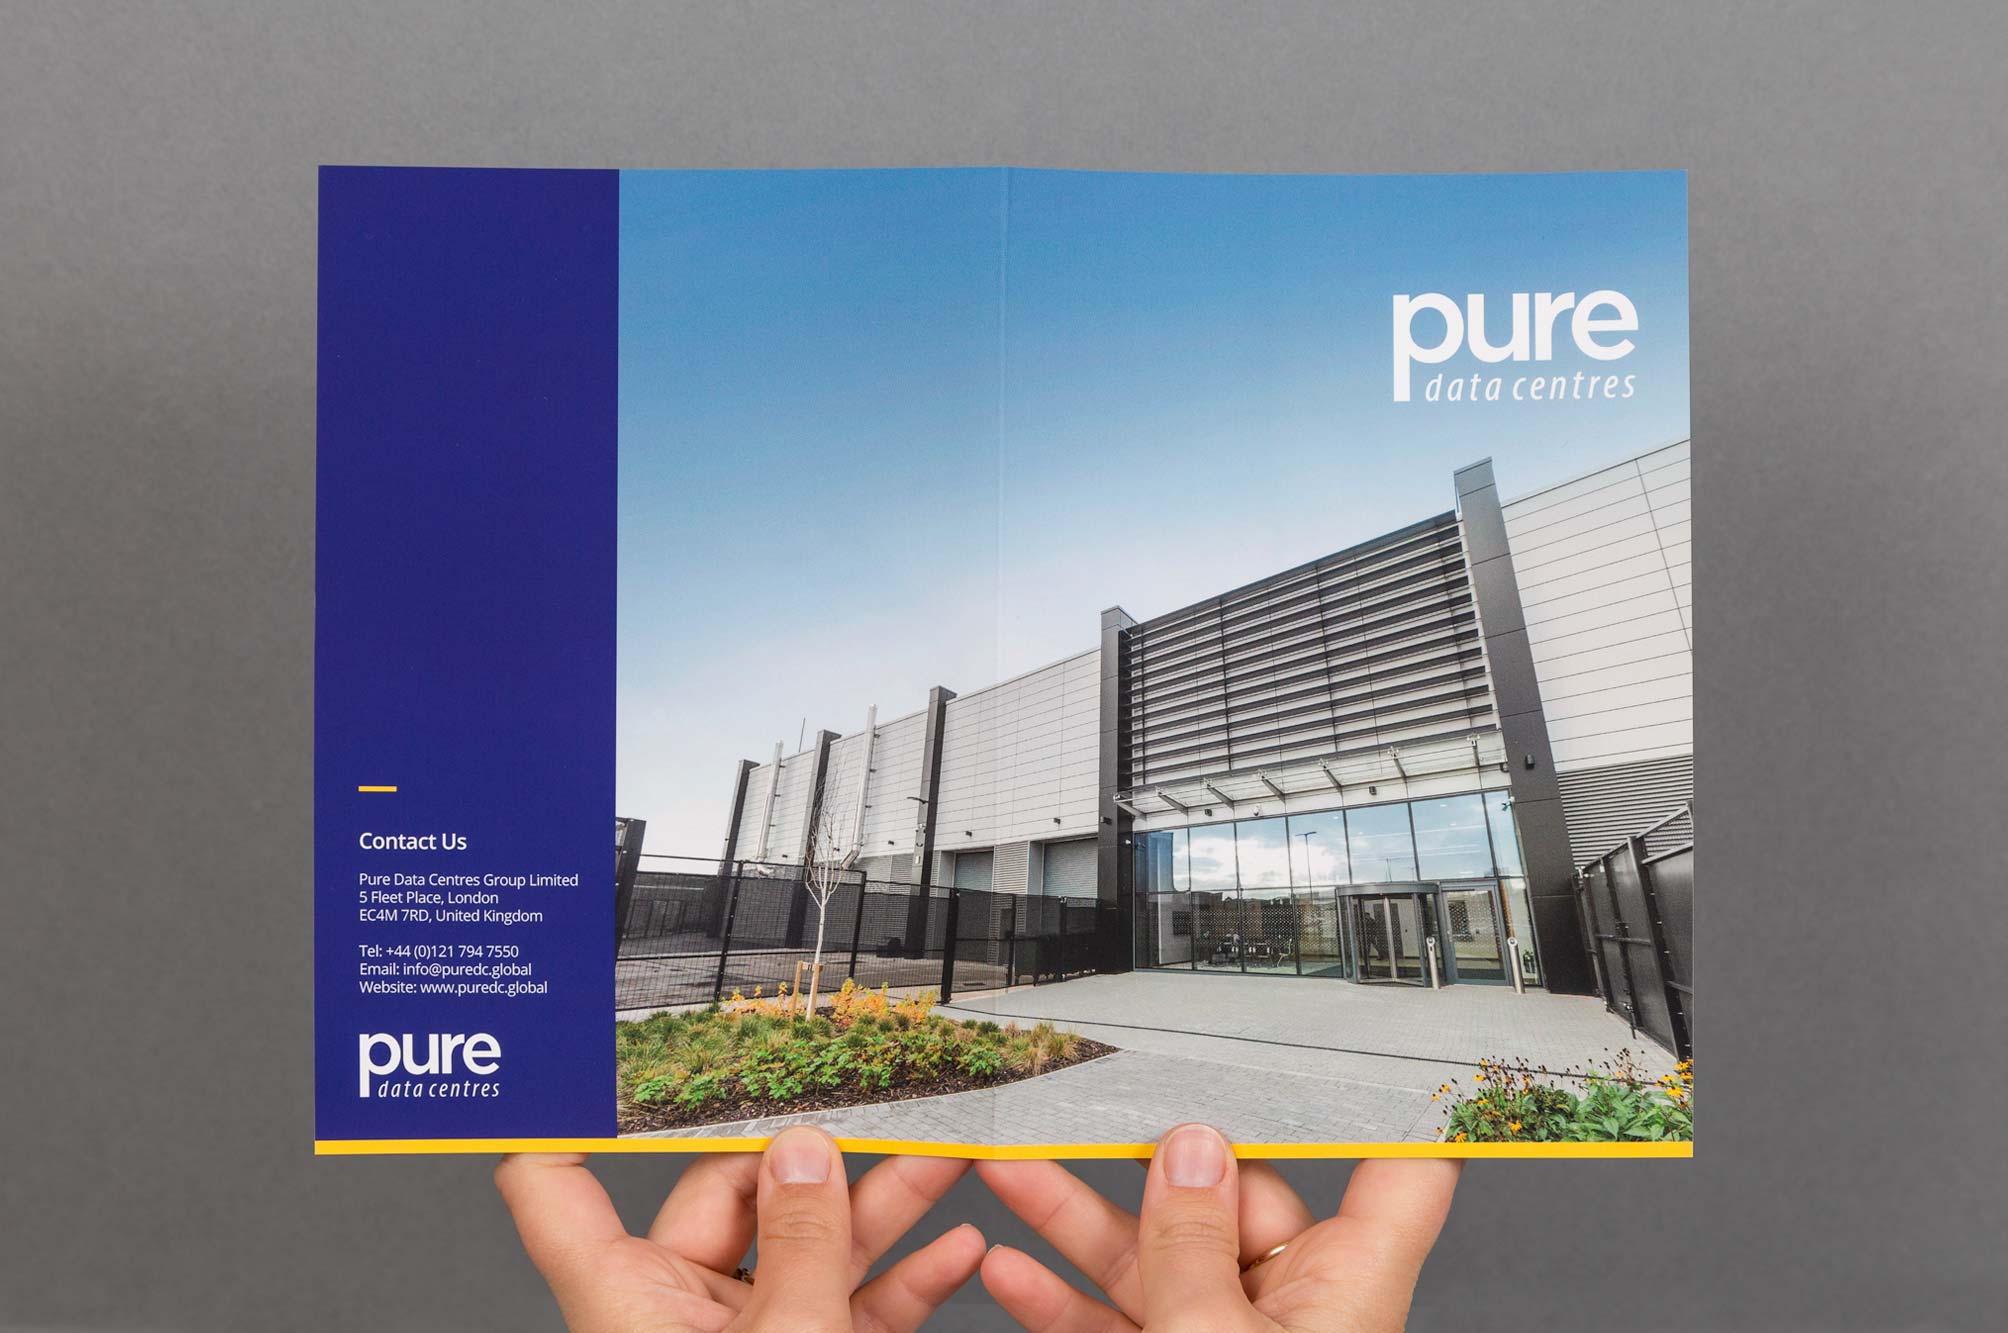 Pure-Data-Centres-Wide-05